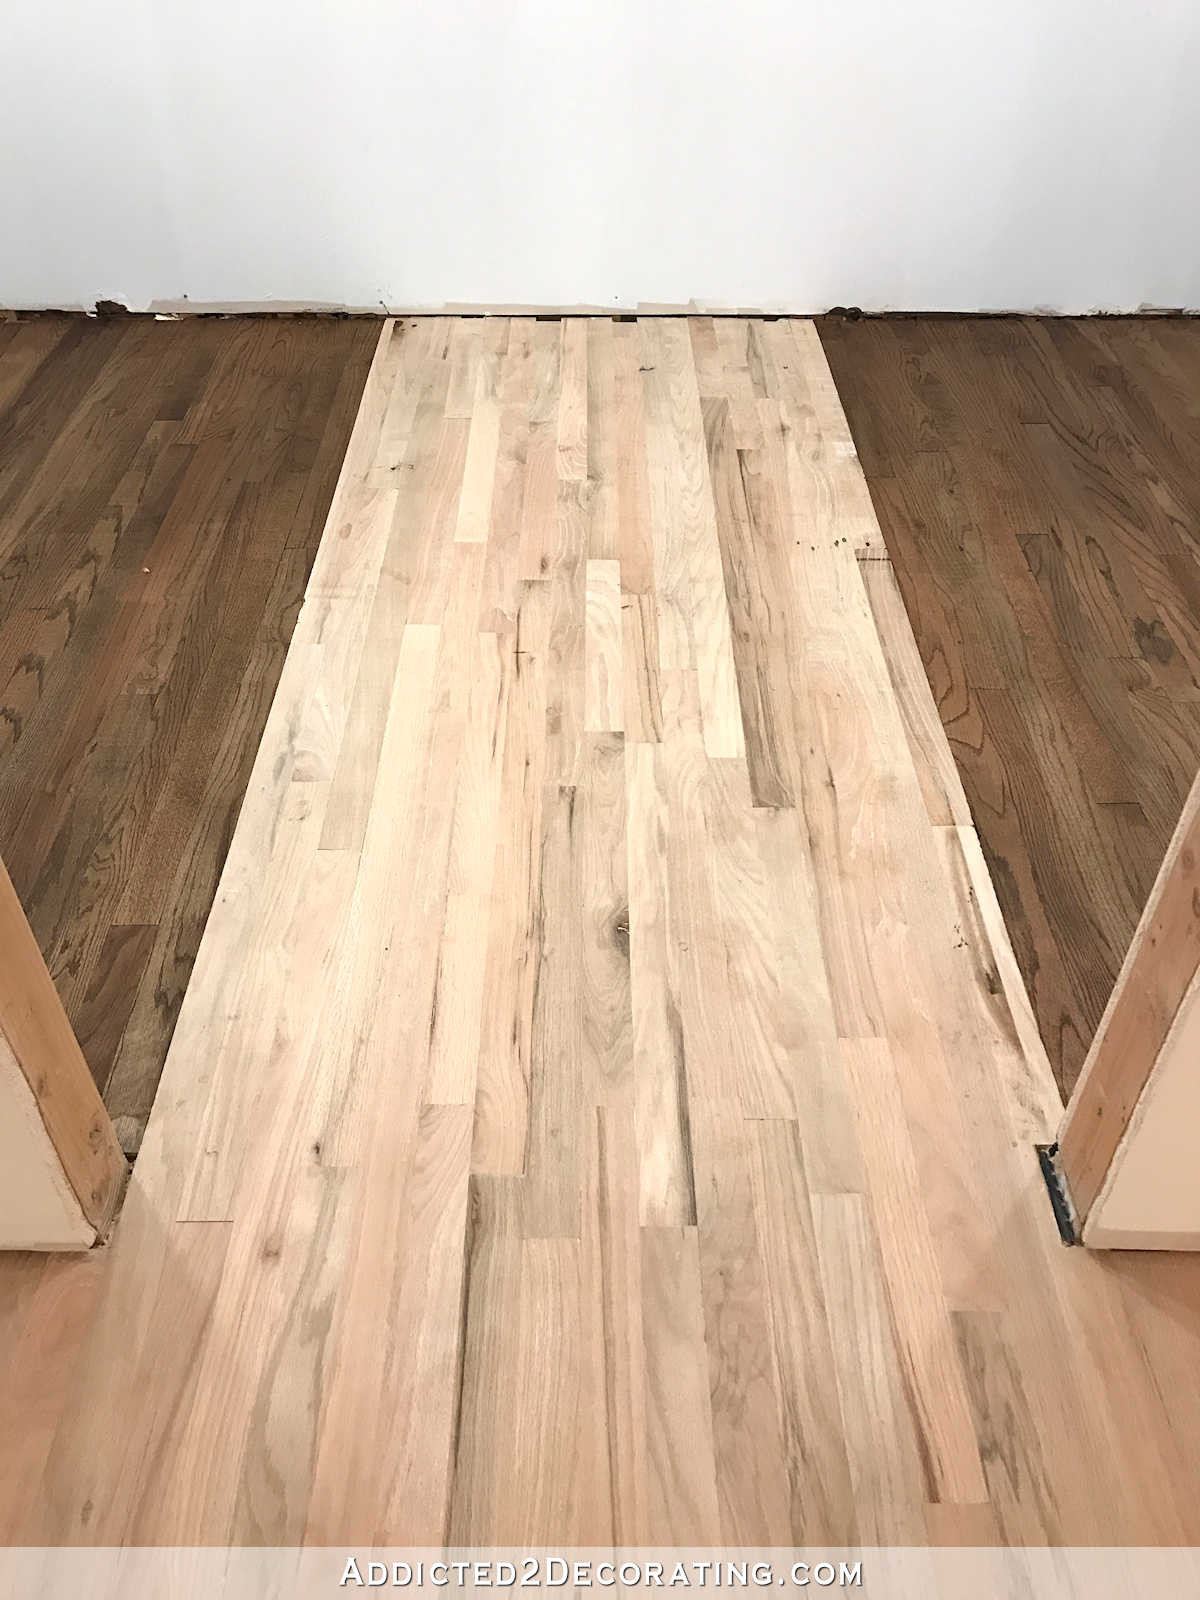 red oak hardwood flooring unfinished of adventures in staining my red oak hardwood floors products process inside staining red oak hardwood floors 11 stain on left and right sides of the